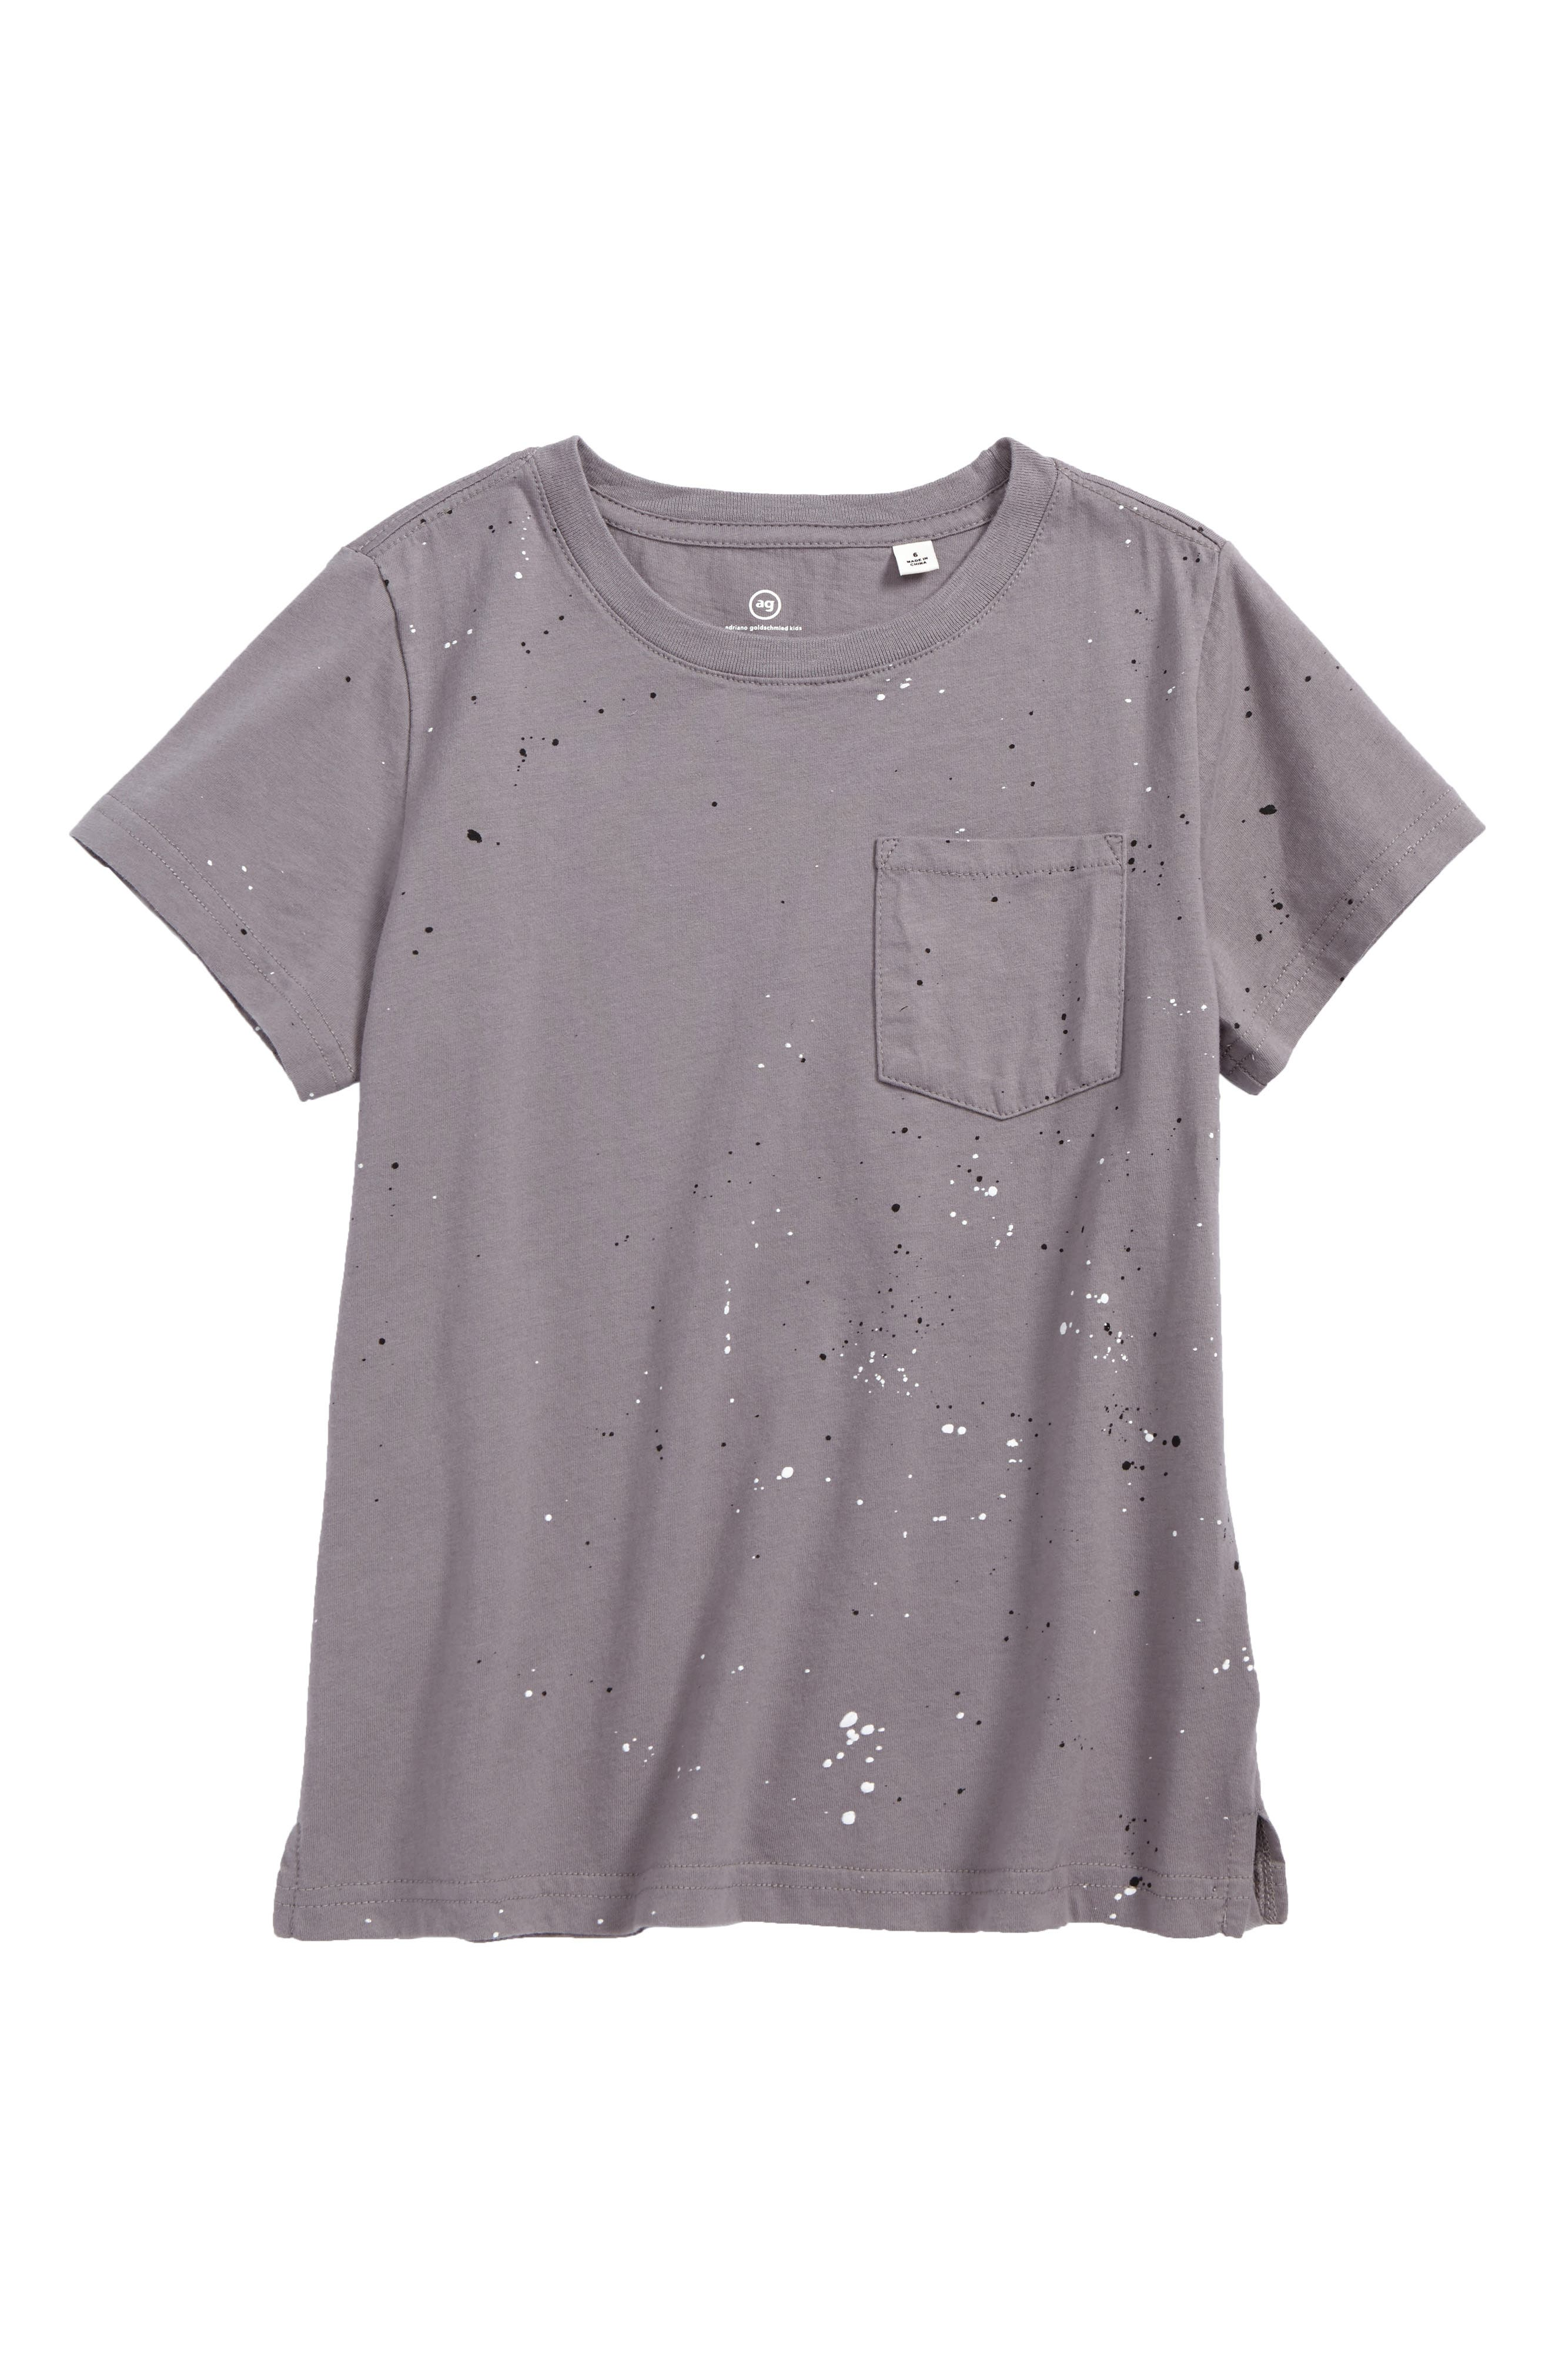 Main Image - ag adriano goldschmied kids Pigment Splatter T-Shirt (Toddler Boys & Little Boys)